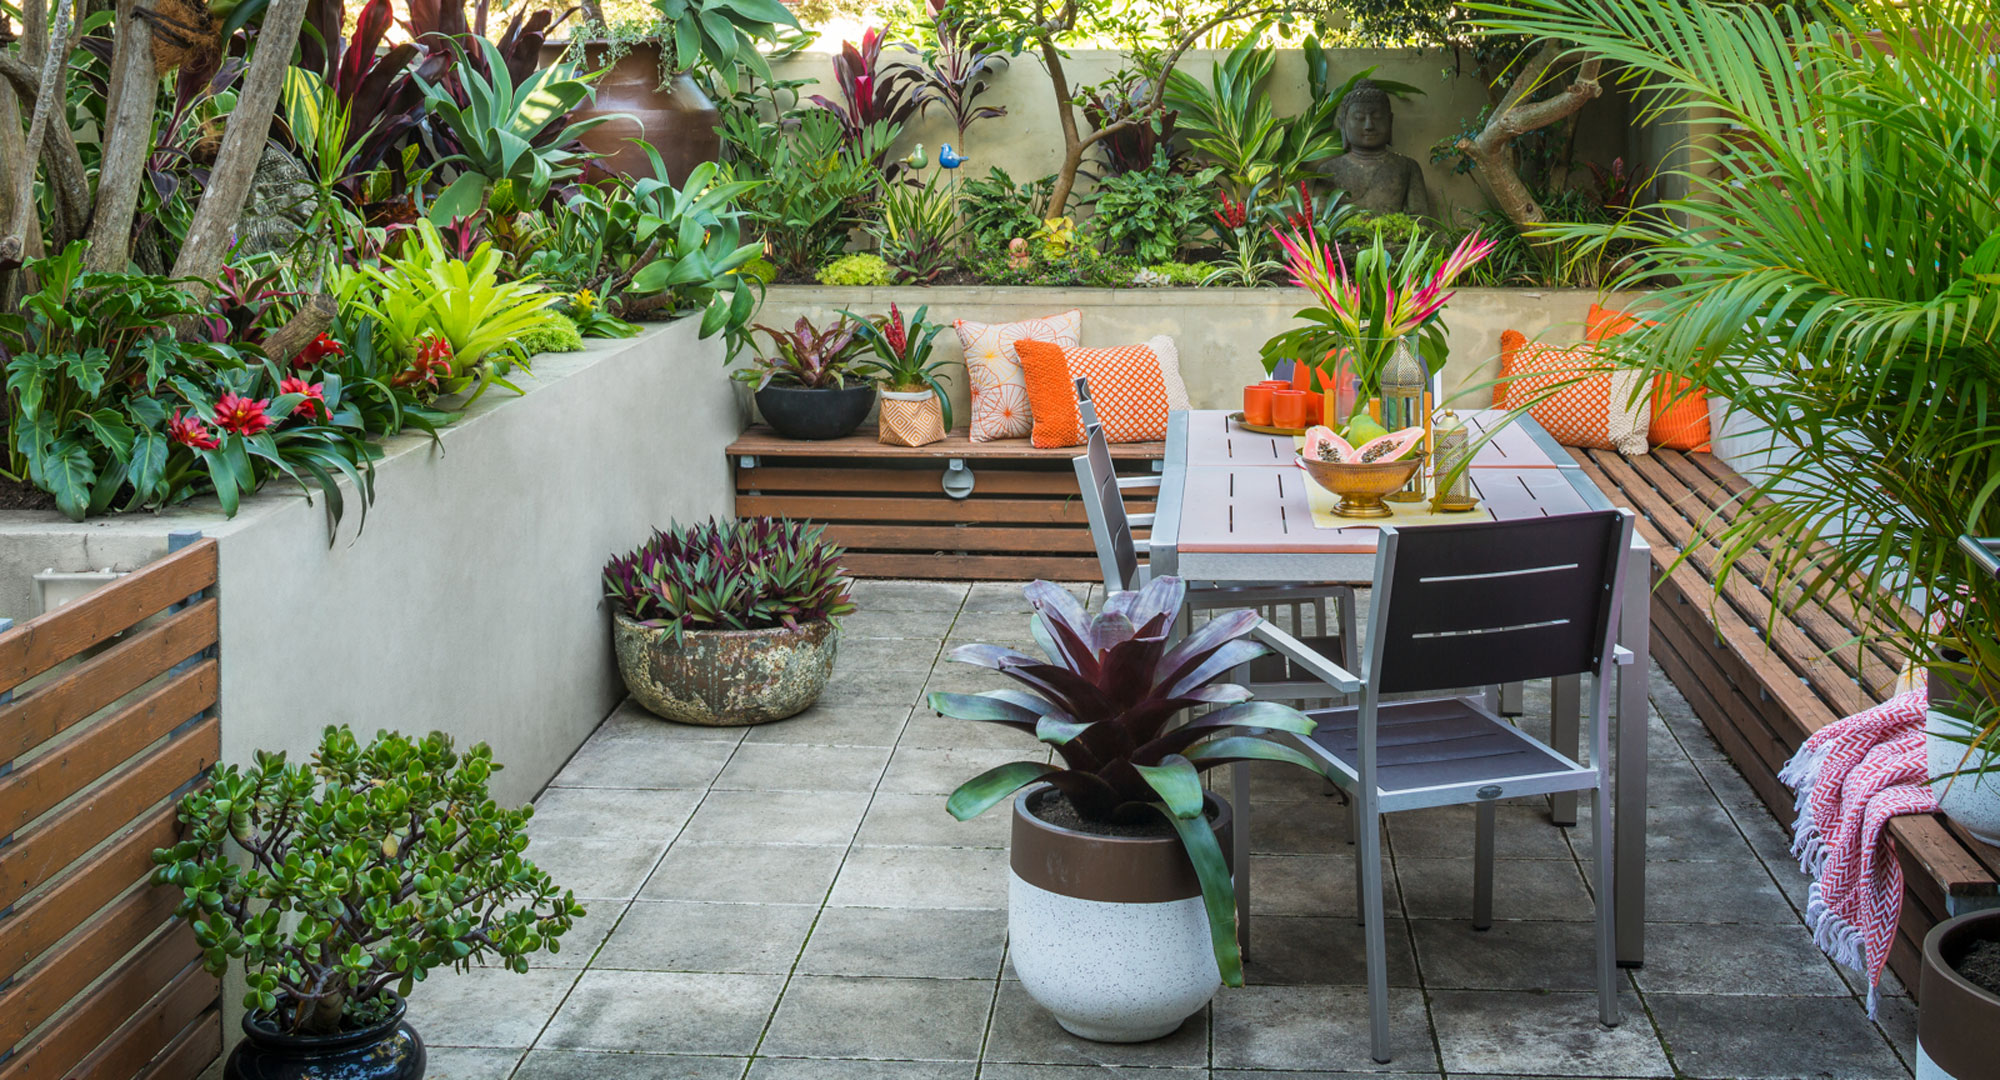 How to design your small back garden space | Better Homes ...